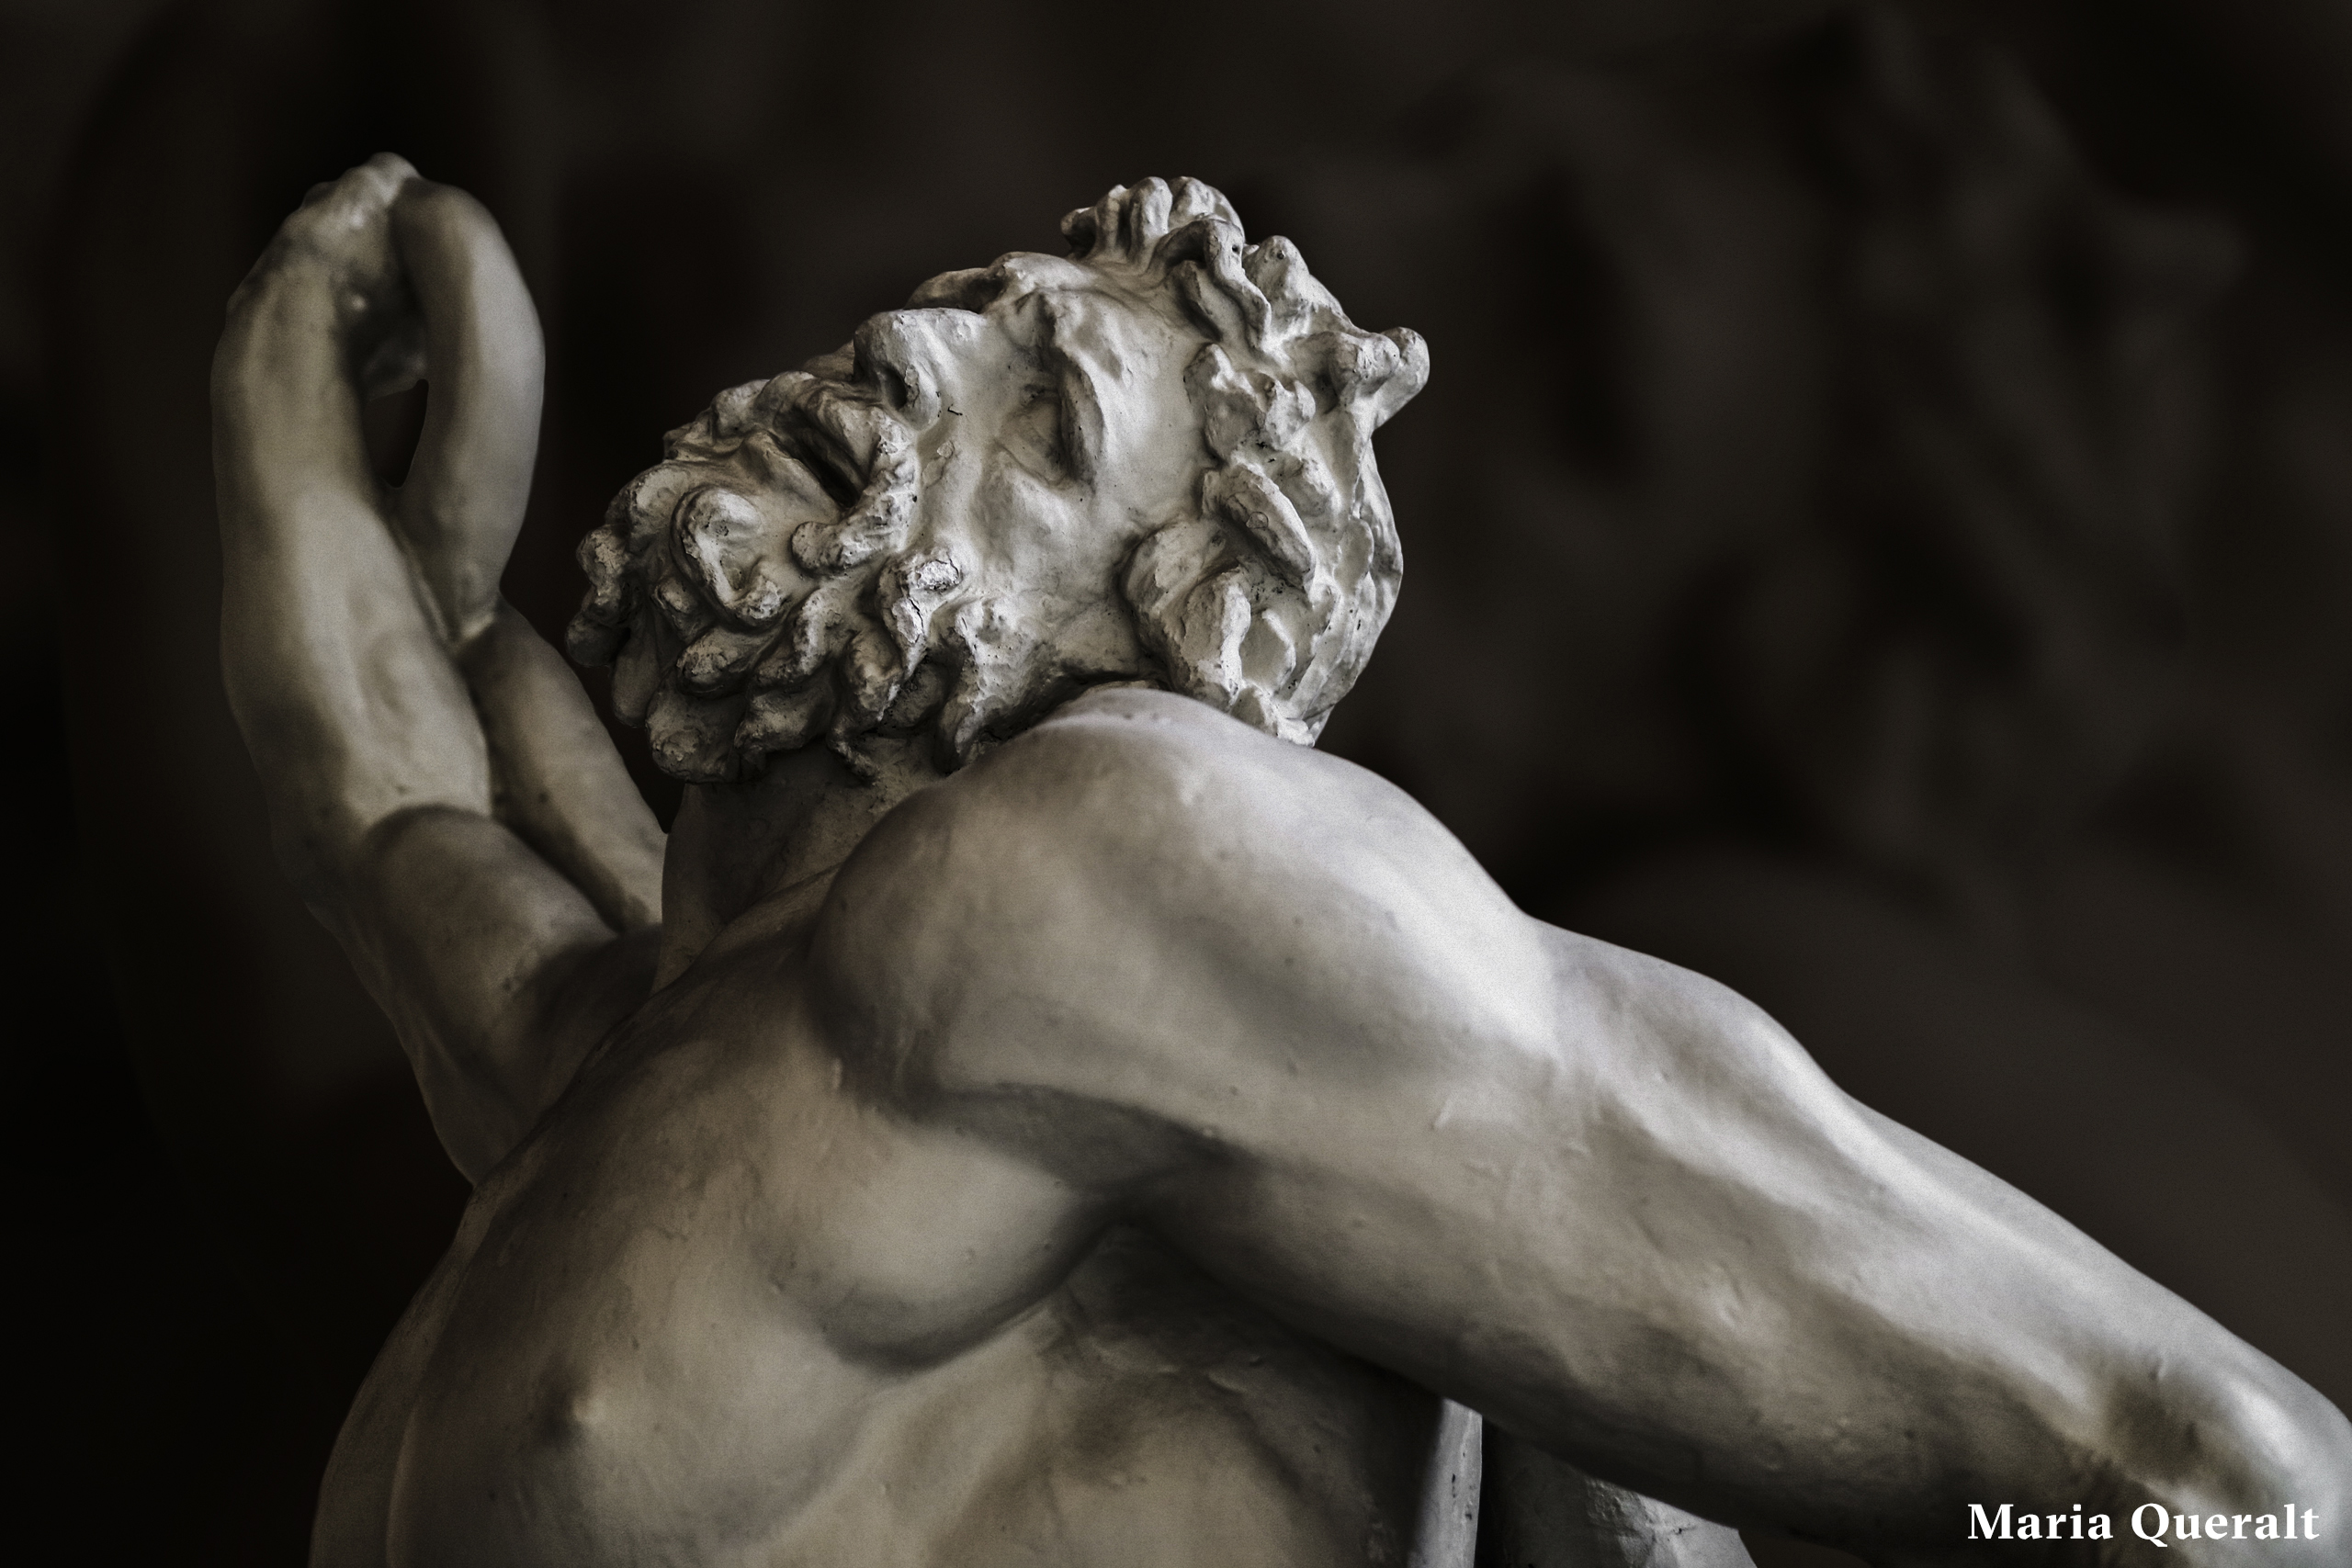 Sculpture in marble of Laocoön and His Sons, the Laocoön Group, Vatican Museums, Vatican City, Italy, Photography and retouch by Maria Queralt